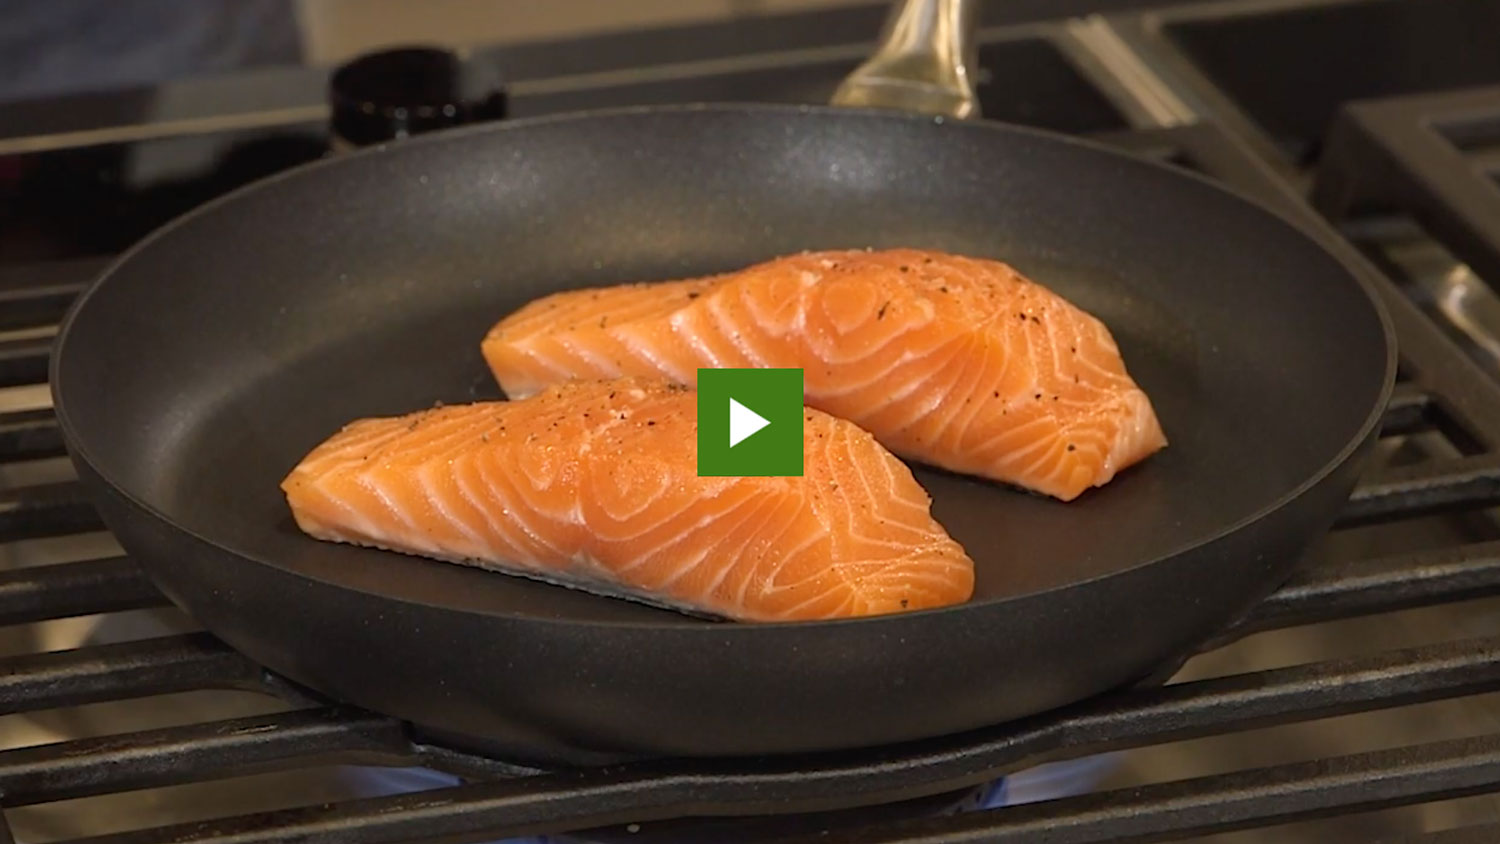 Salmon cooking on the stove